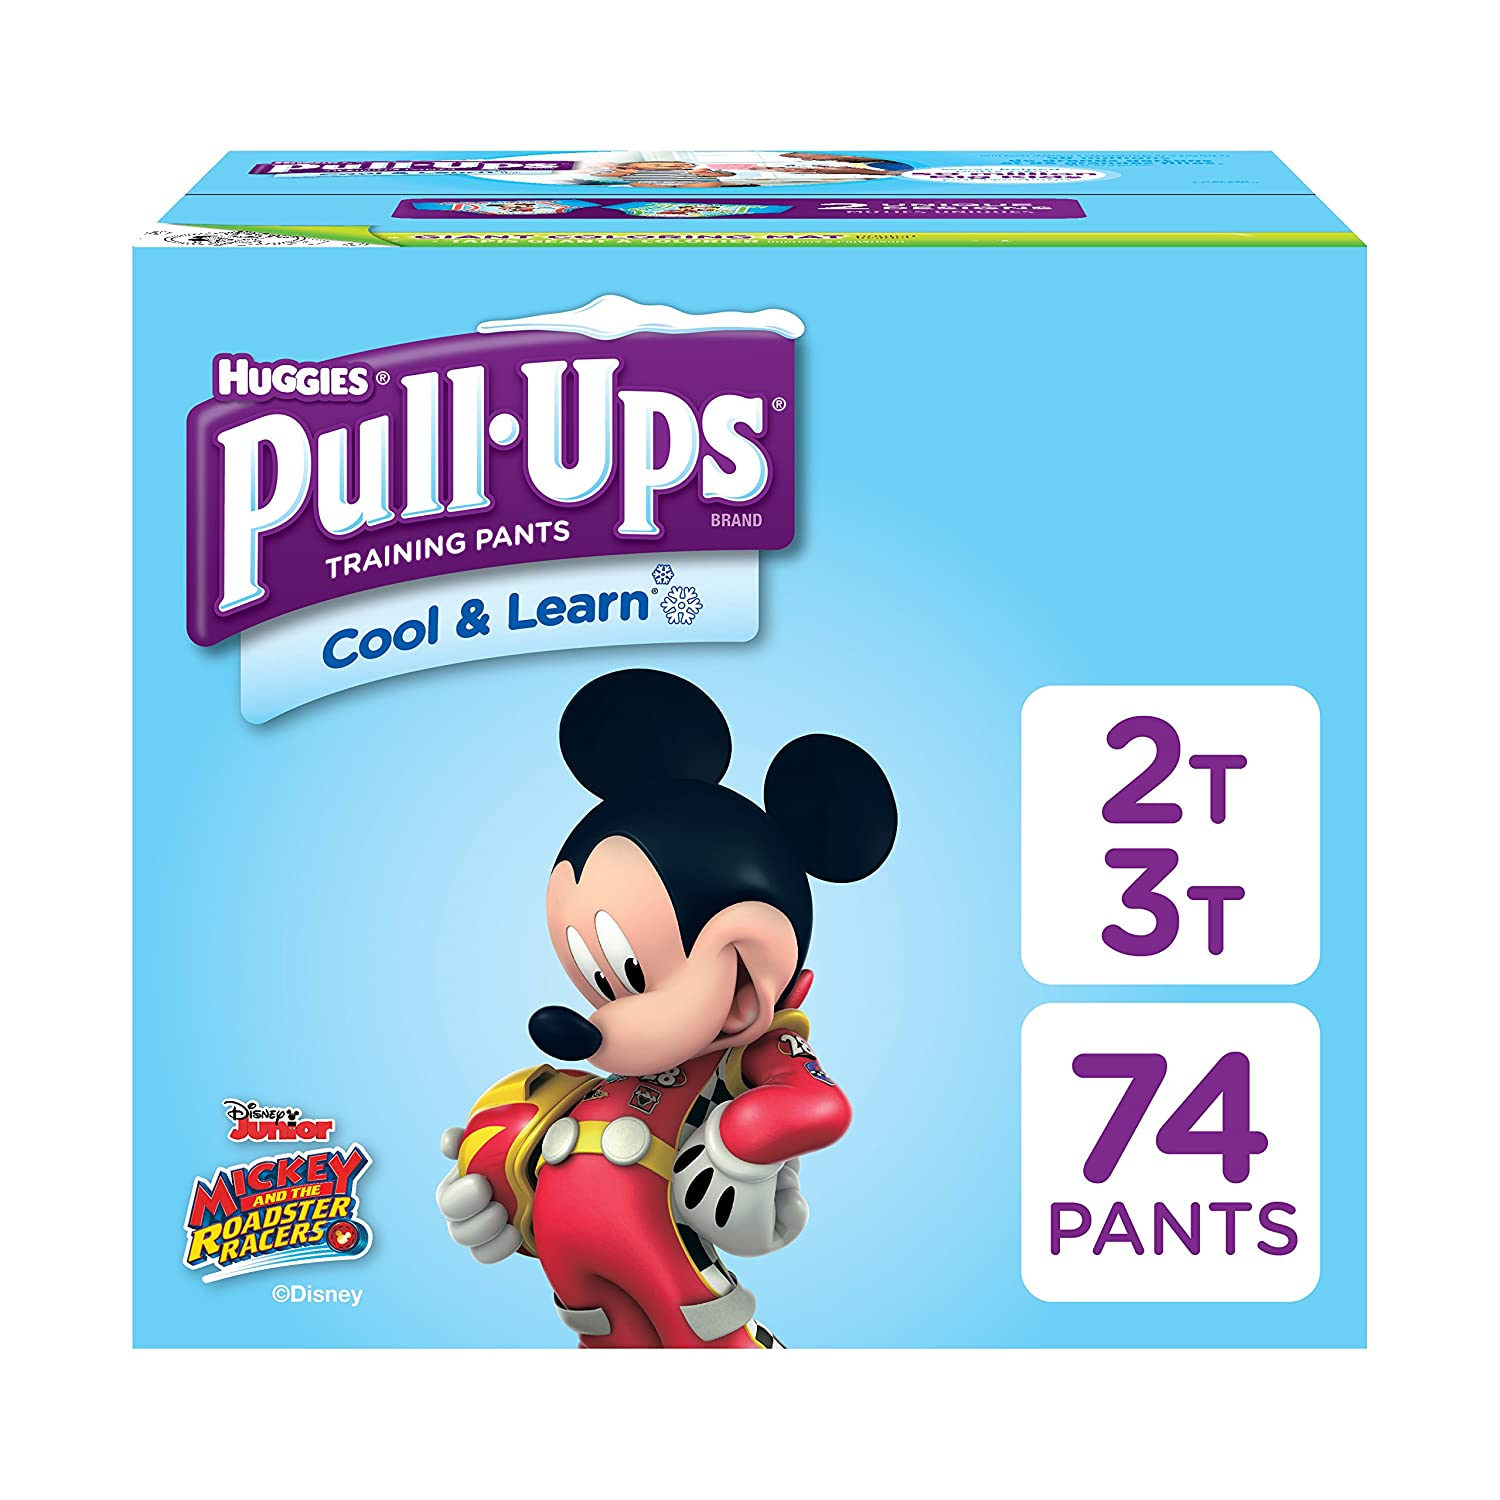 Pull-Ups Cool /& Learn Training Pants for Boys Packaging May Vary 38-50 lbs. Toddler Potty Training Underwear 56 Count 4T-5T